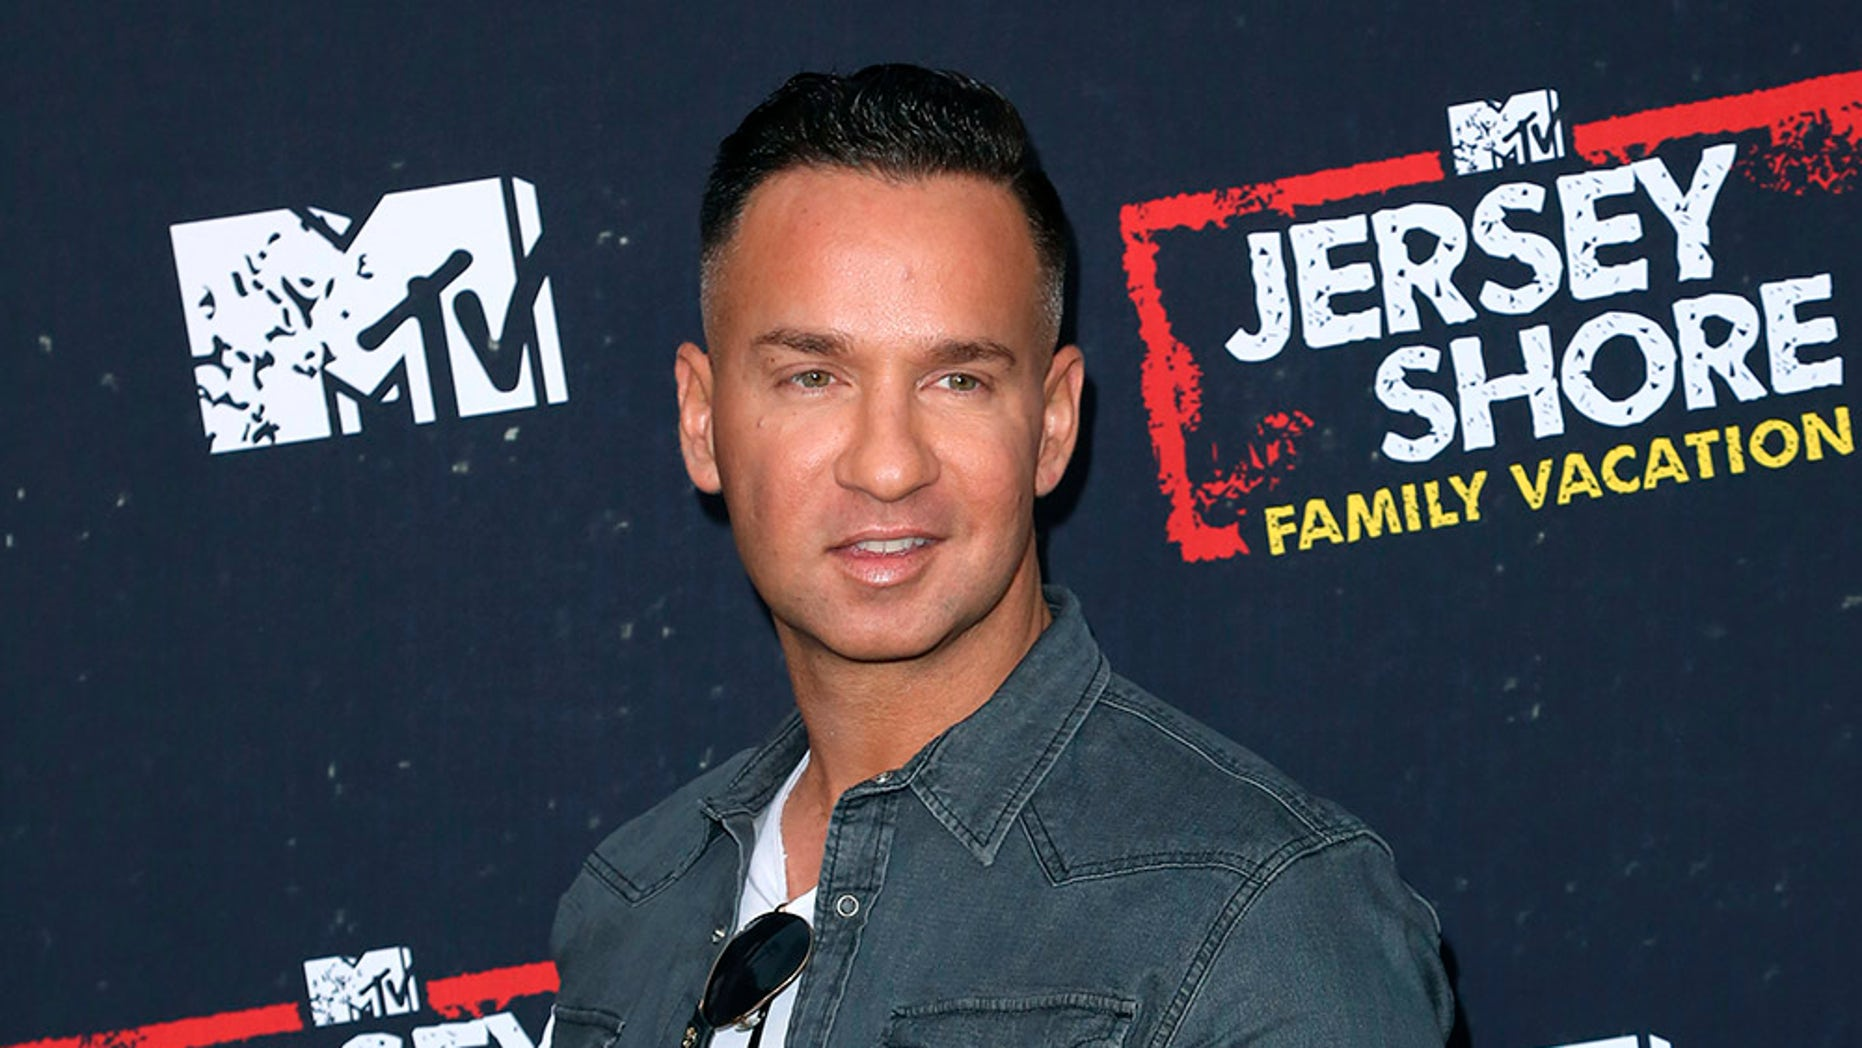 Mike 'The Situation' Sorrentino Sentenced To Eight Months In Prison